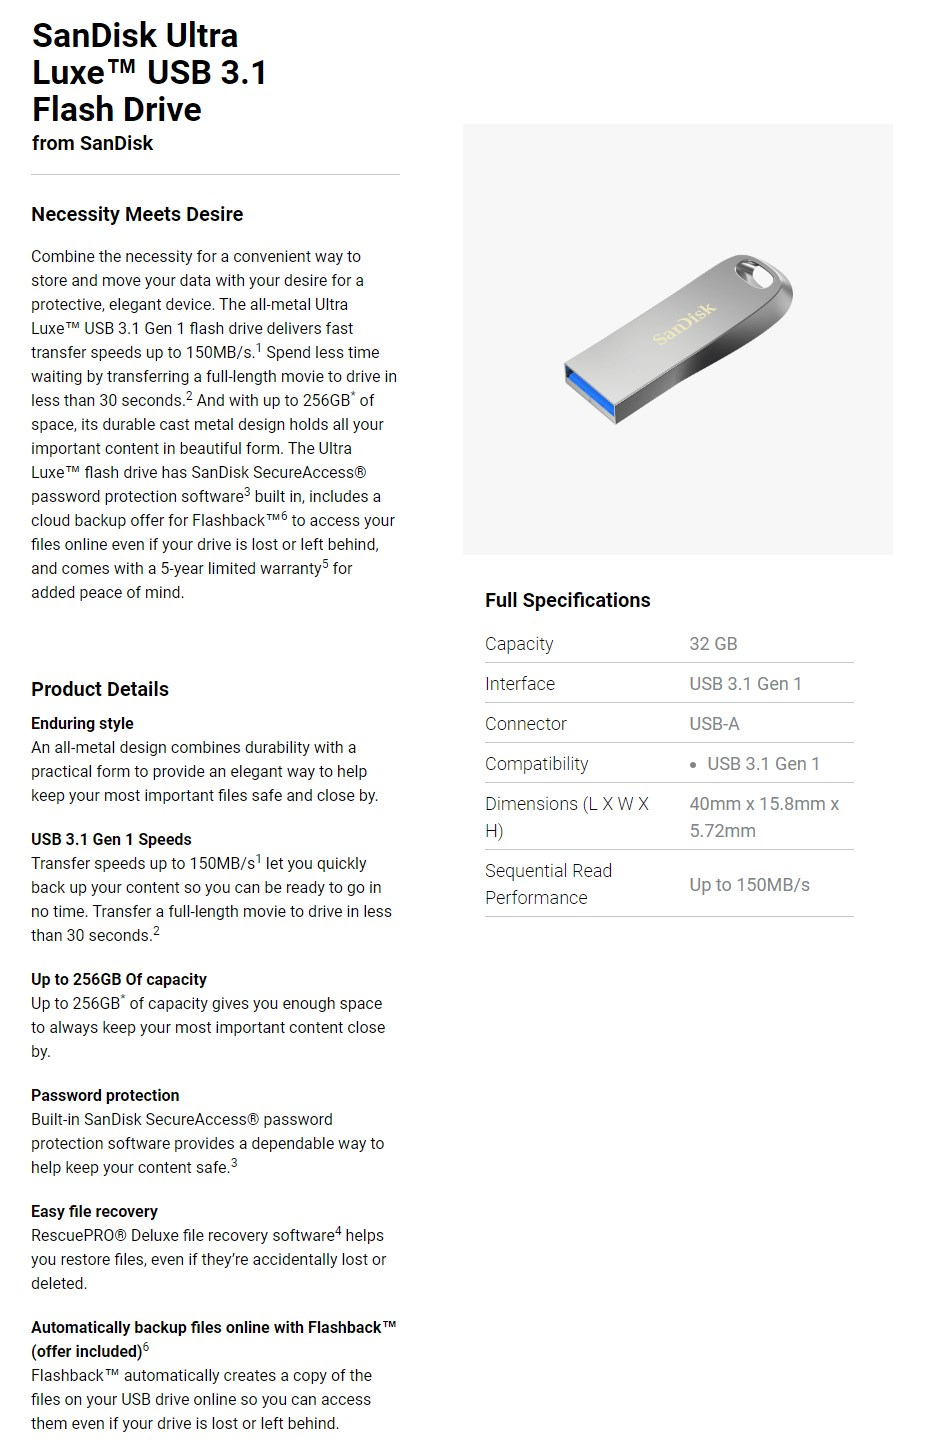 SanDisk 32GB Ultra Luxe USB 3.1 Flash Drive - Overview 1